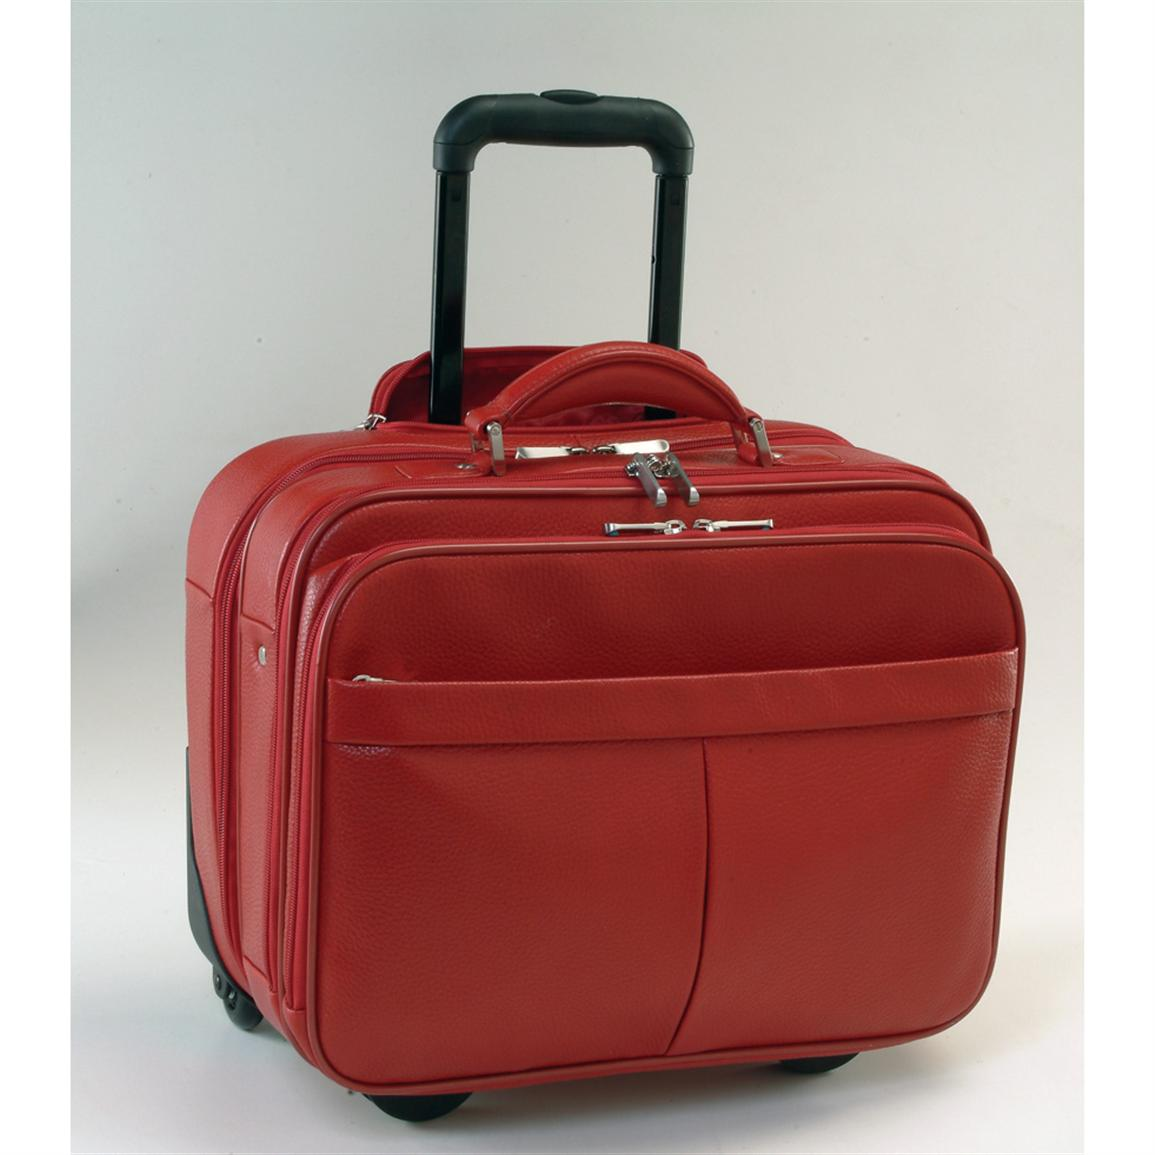 Royce Leather Ultimate Computer / Commuter Travel Case, Red